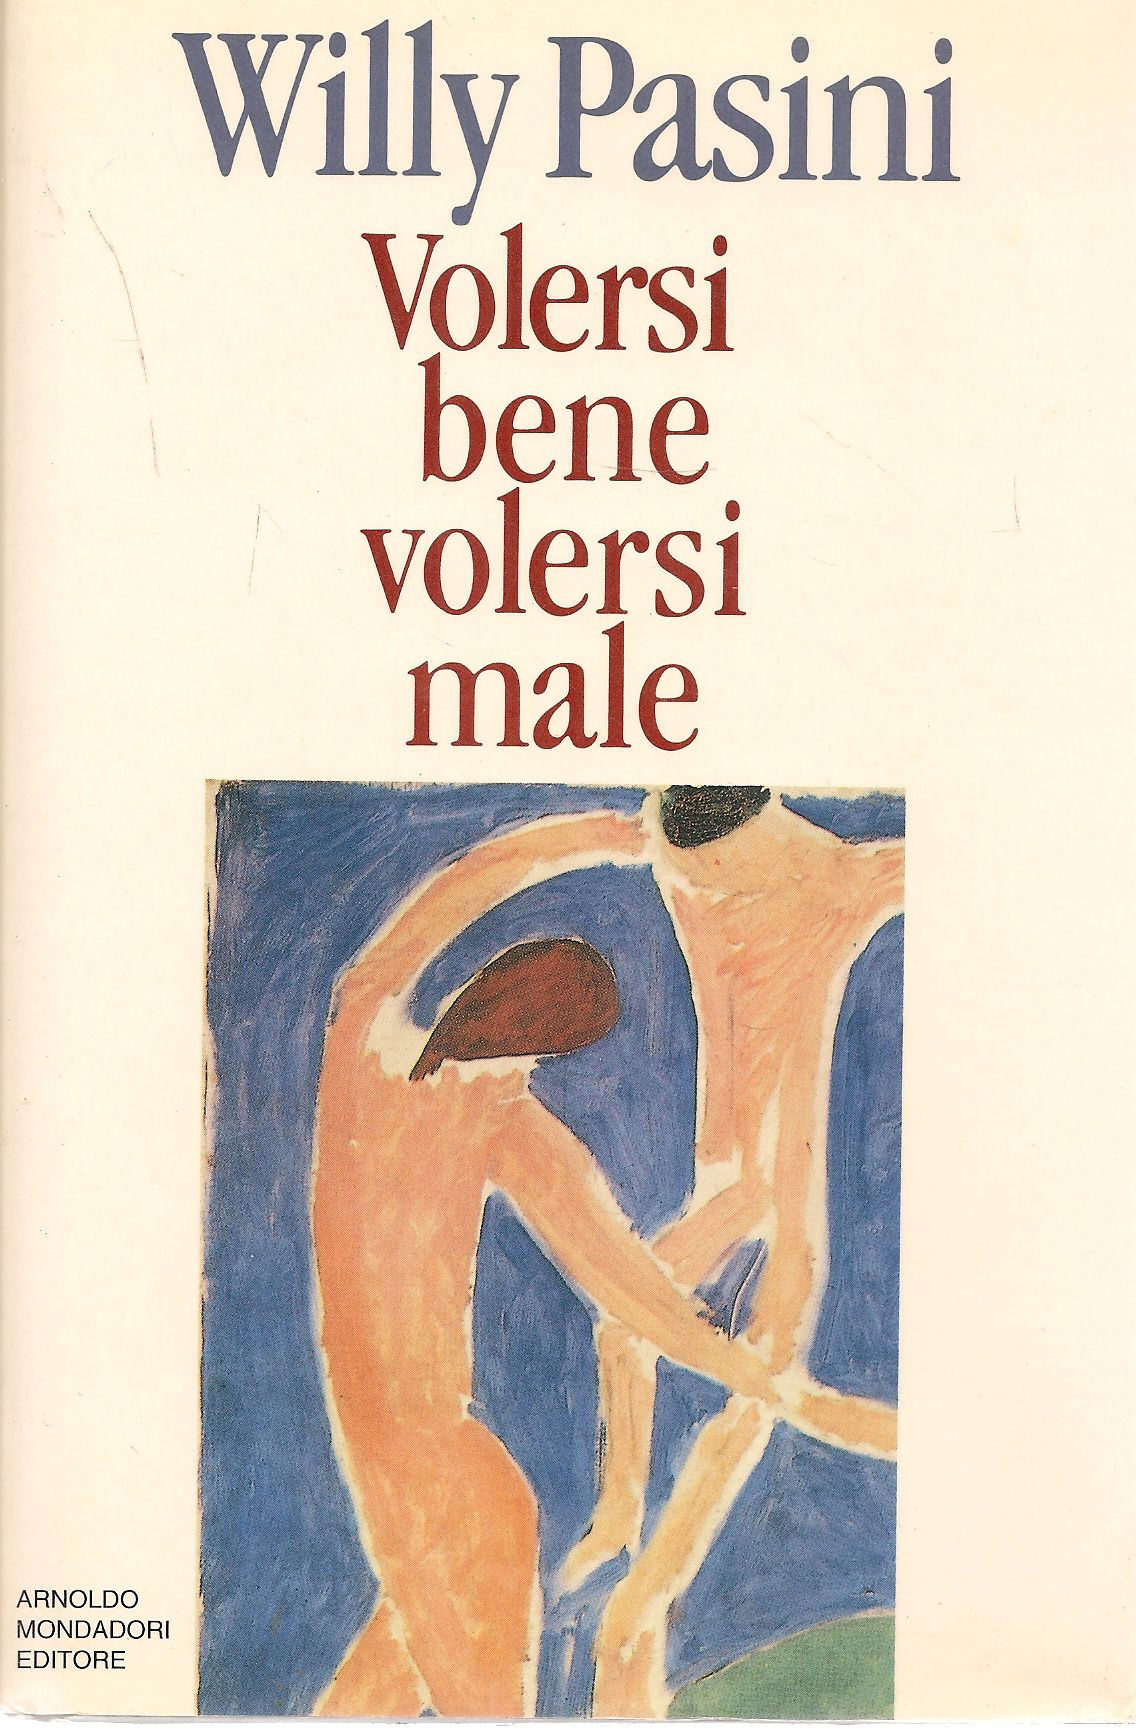 VOLERSI BENE VOLERSI MALE - WILLY PASINI